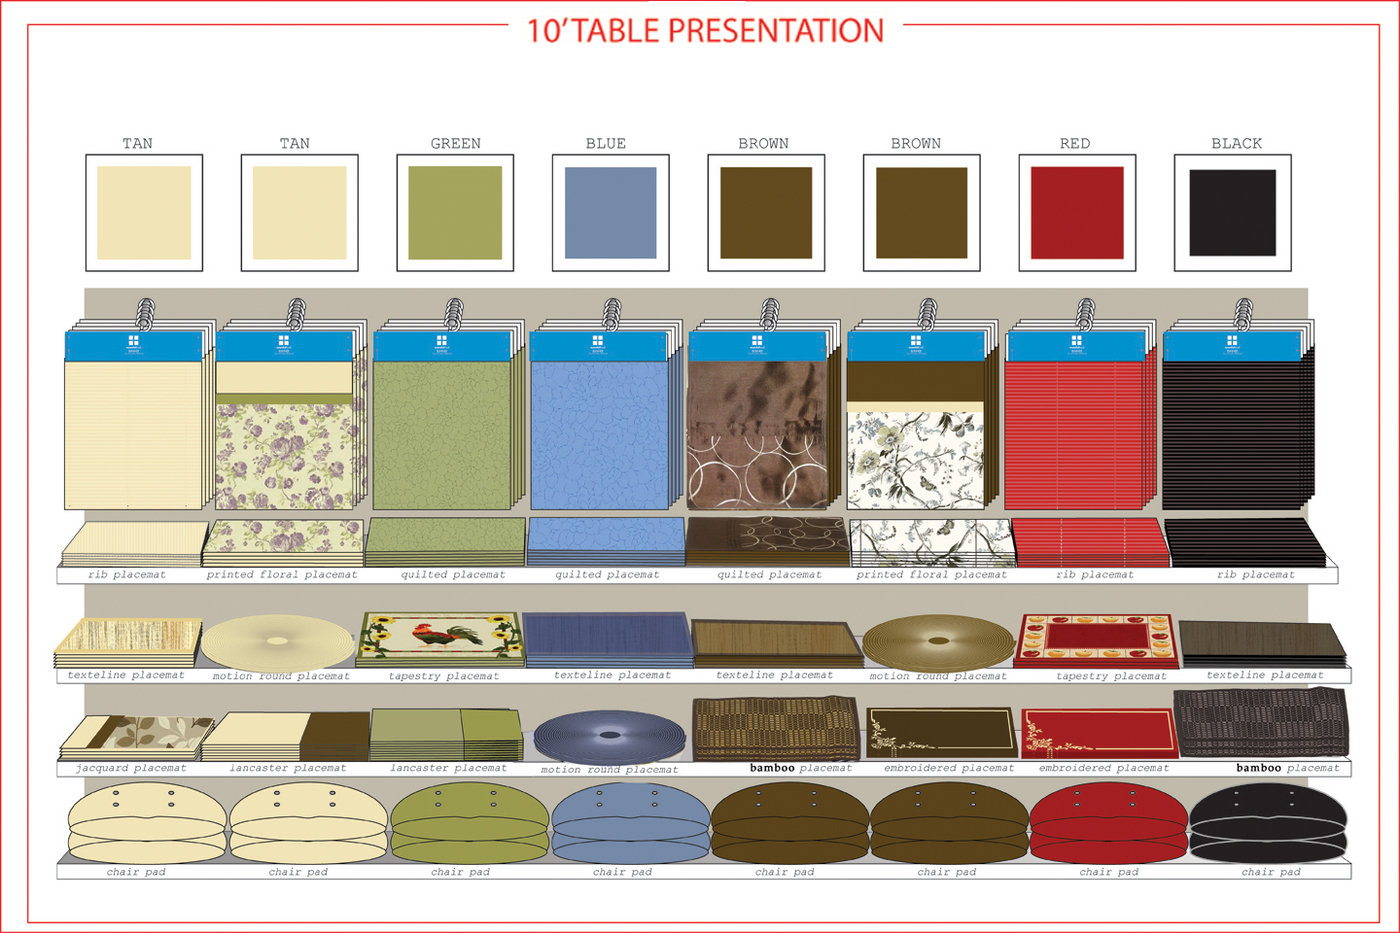 10' Planogram of Table Placemats for Spring 2012 Kmart